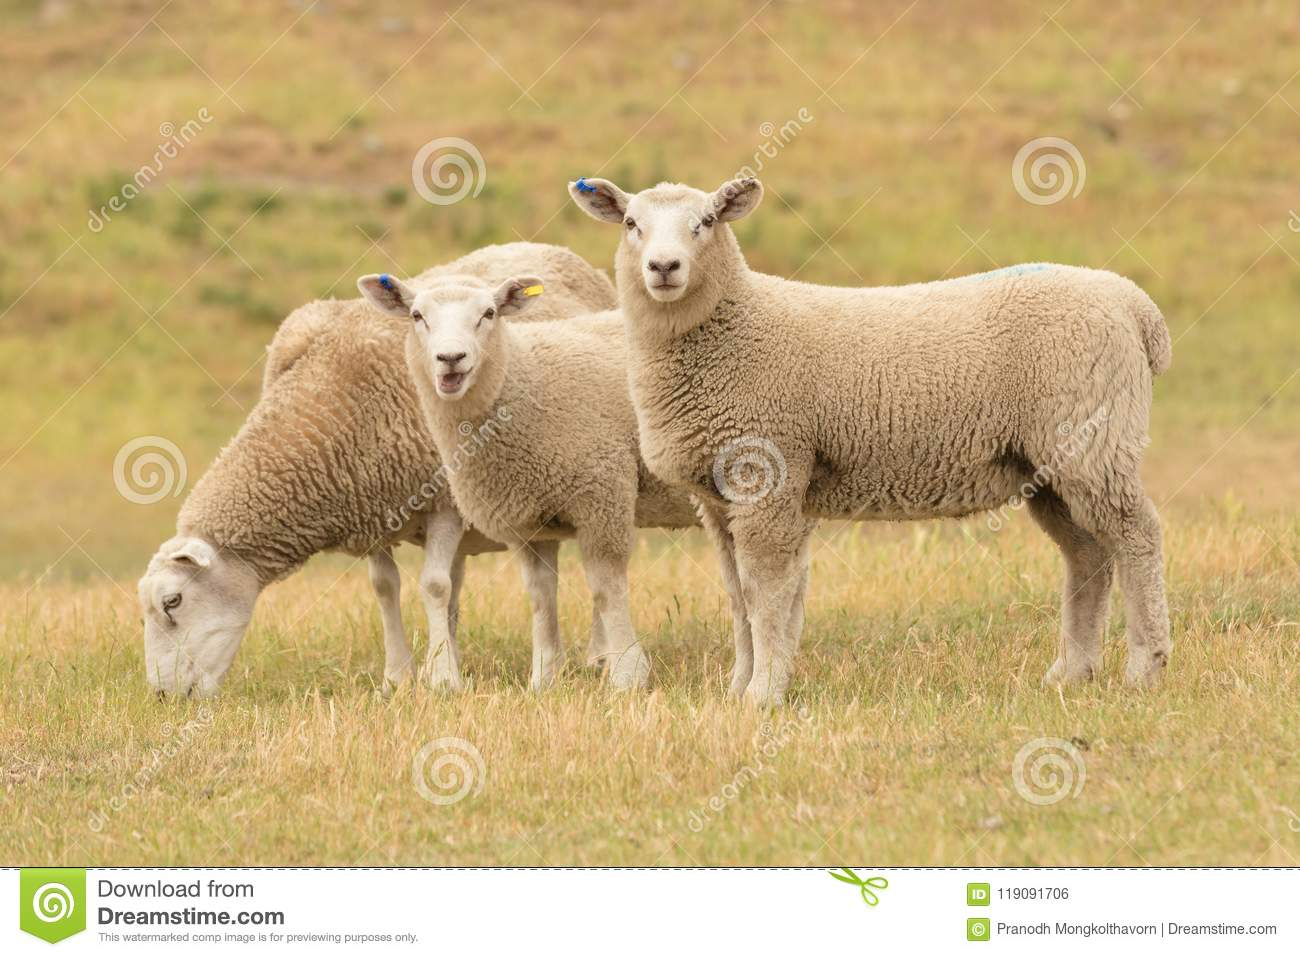 Cute baby sheep over dry grass field